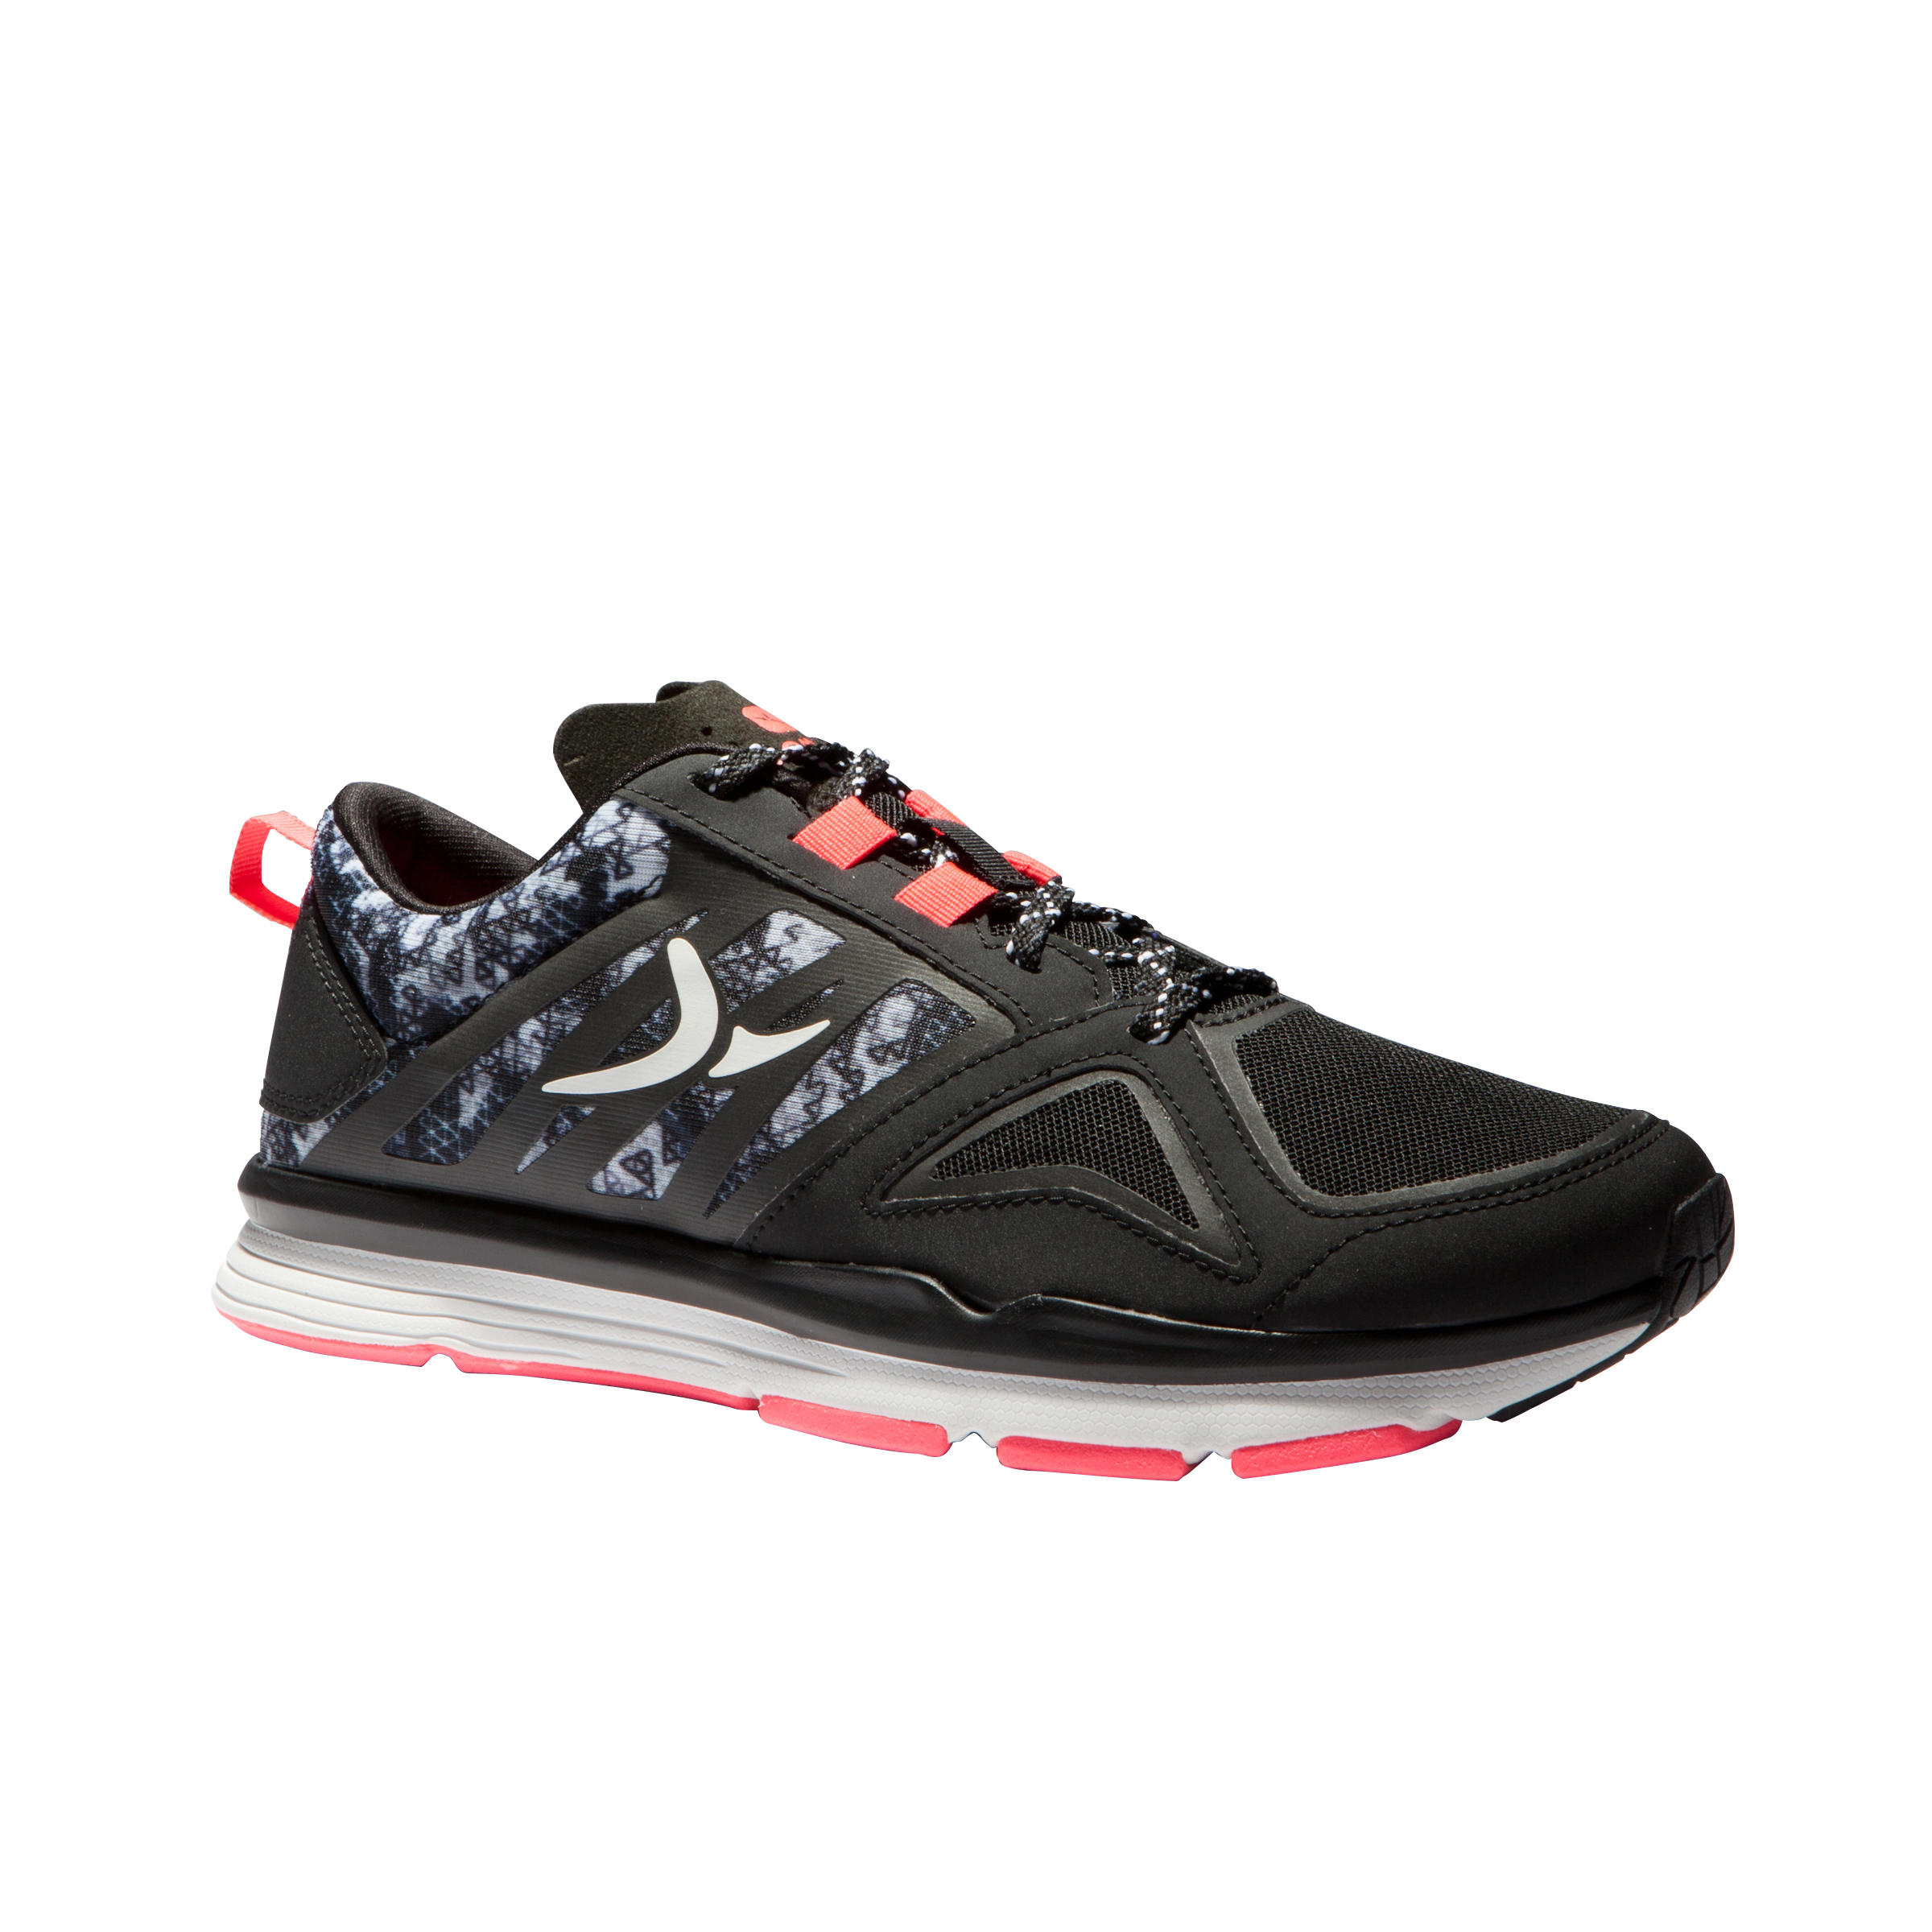 Energy 900 Women's Cardio Fitness Shoes - Black/Pink